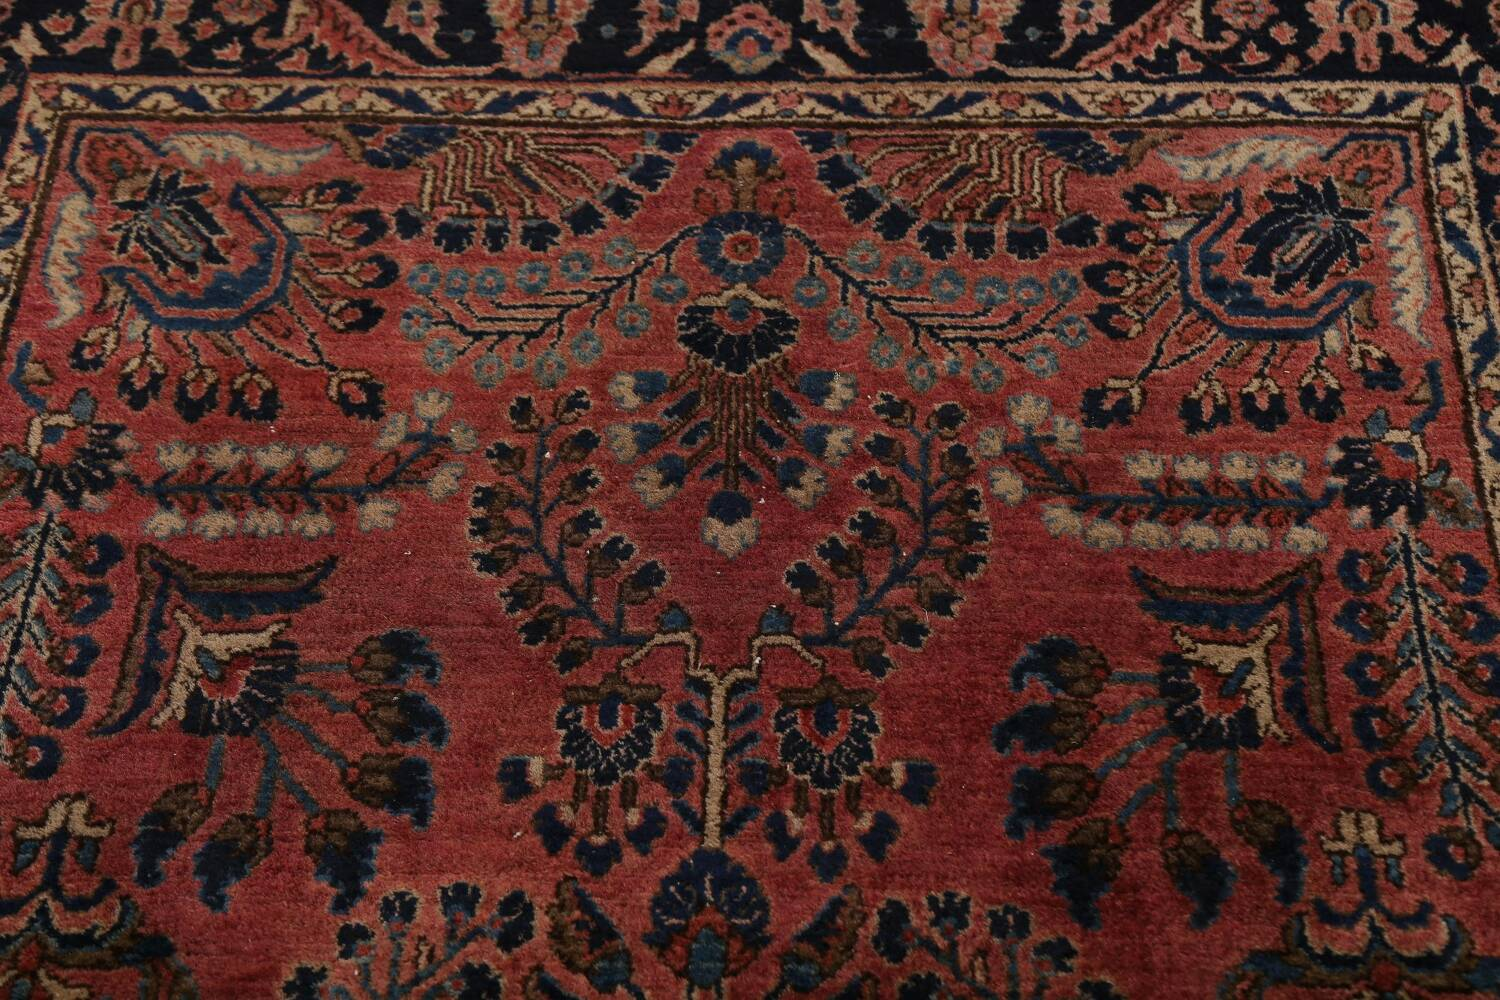 Antique Vegetable Dye Floral Sarouk Persian Area Rug 4x7 image 9